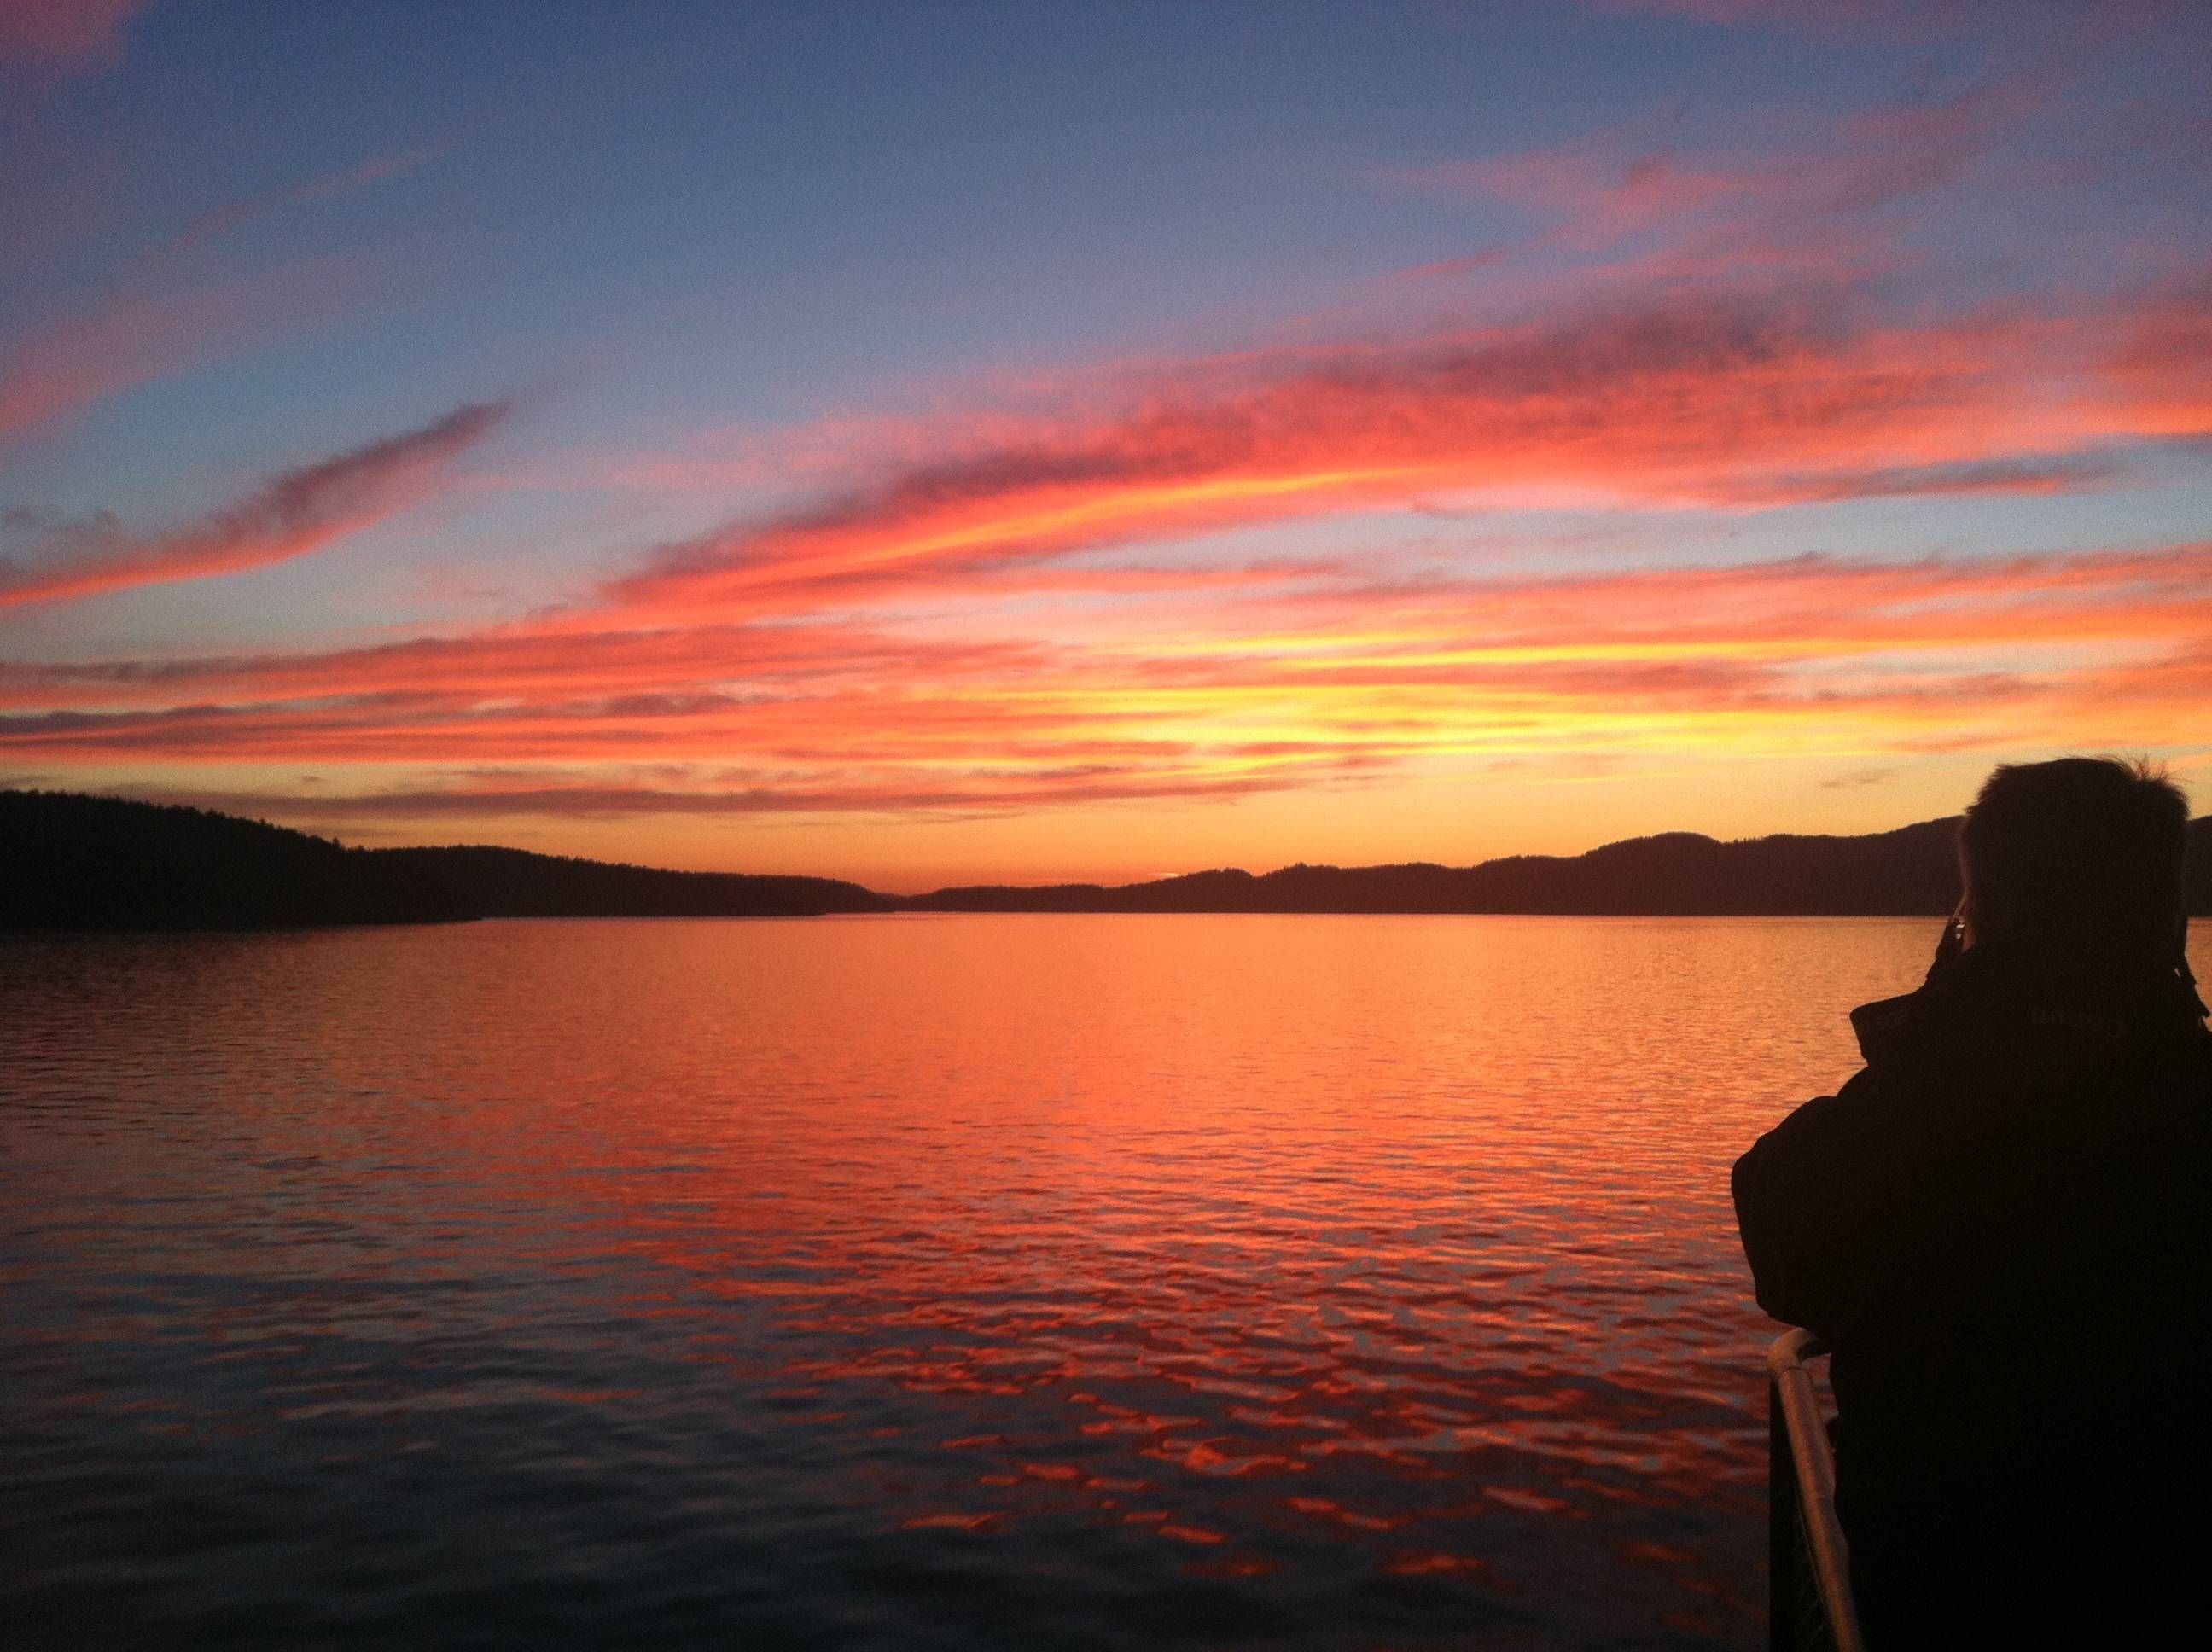 Took this on a ferry ride to Orcas Island, WA with my